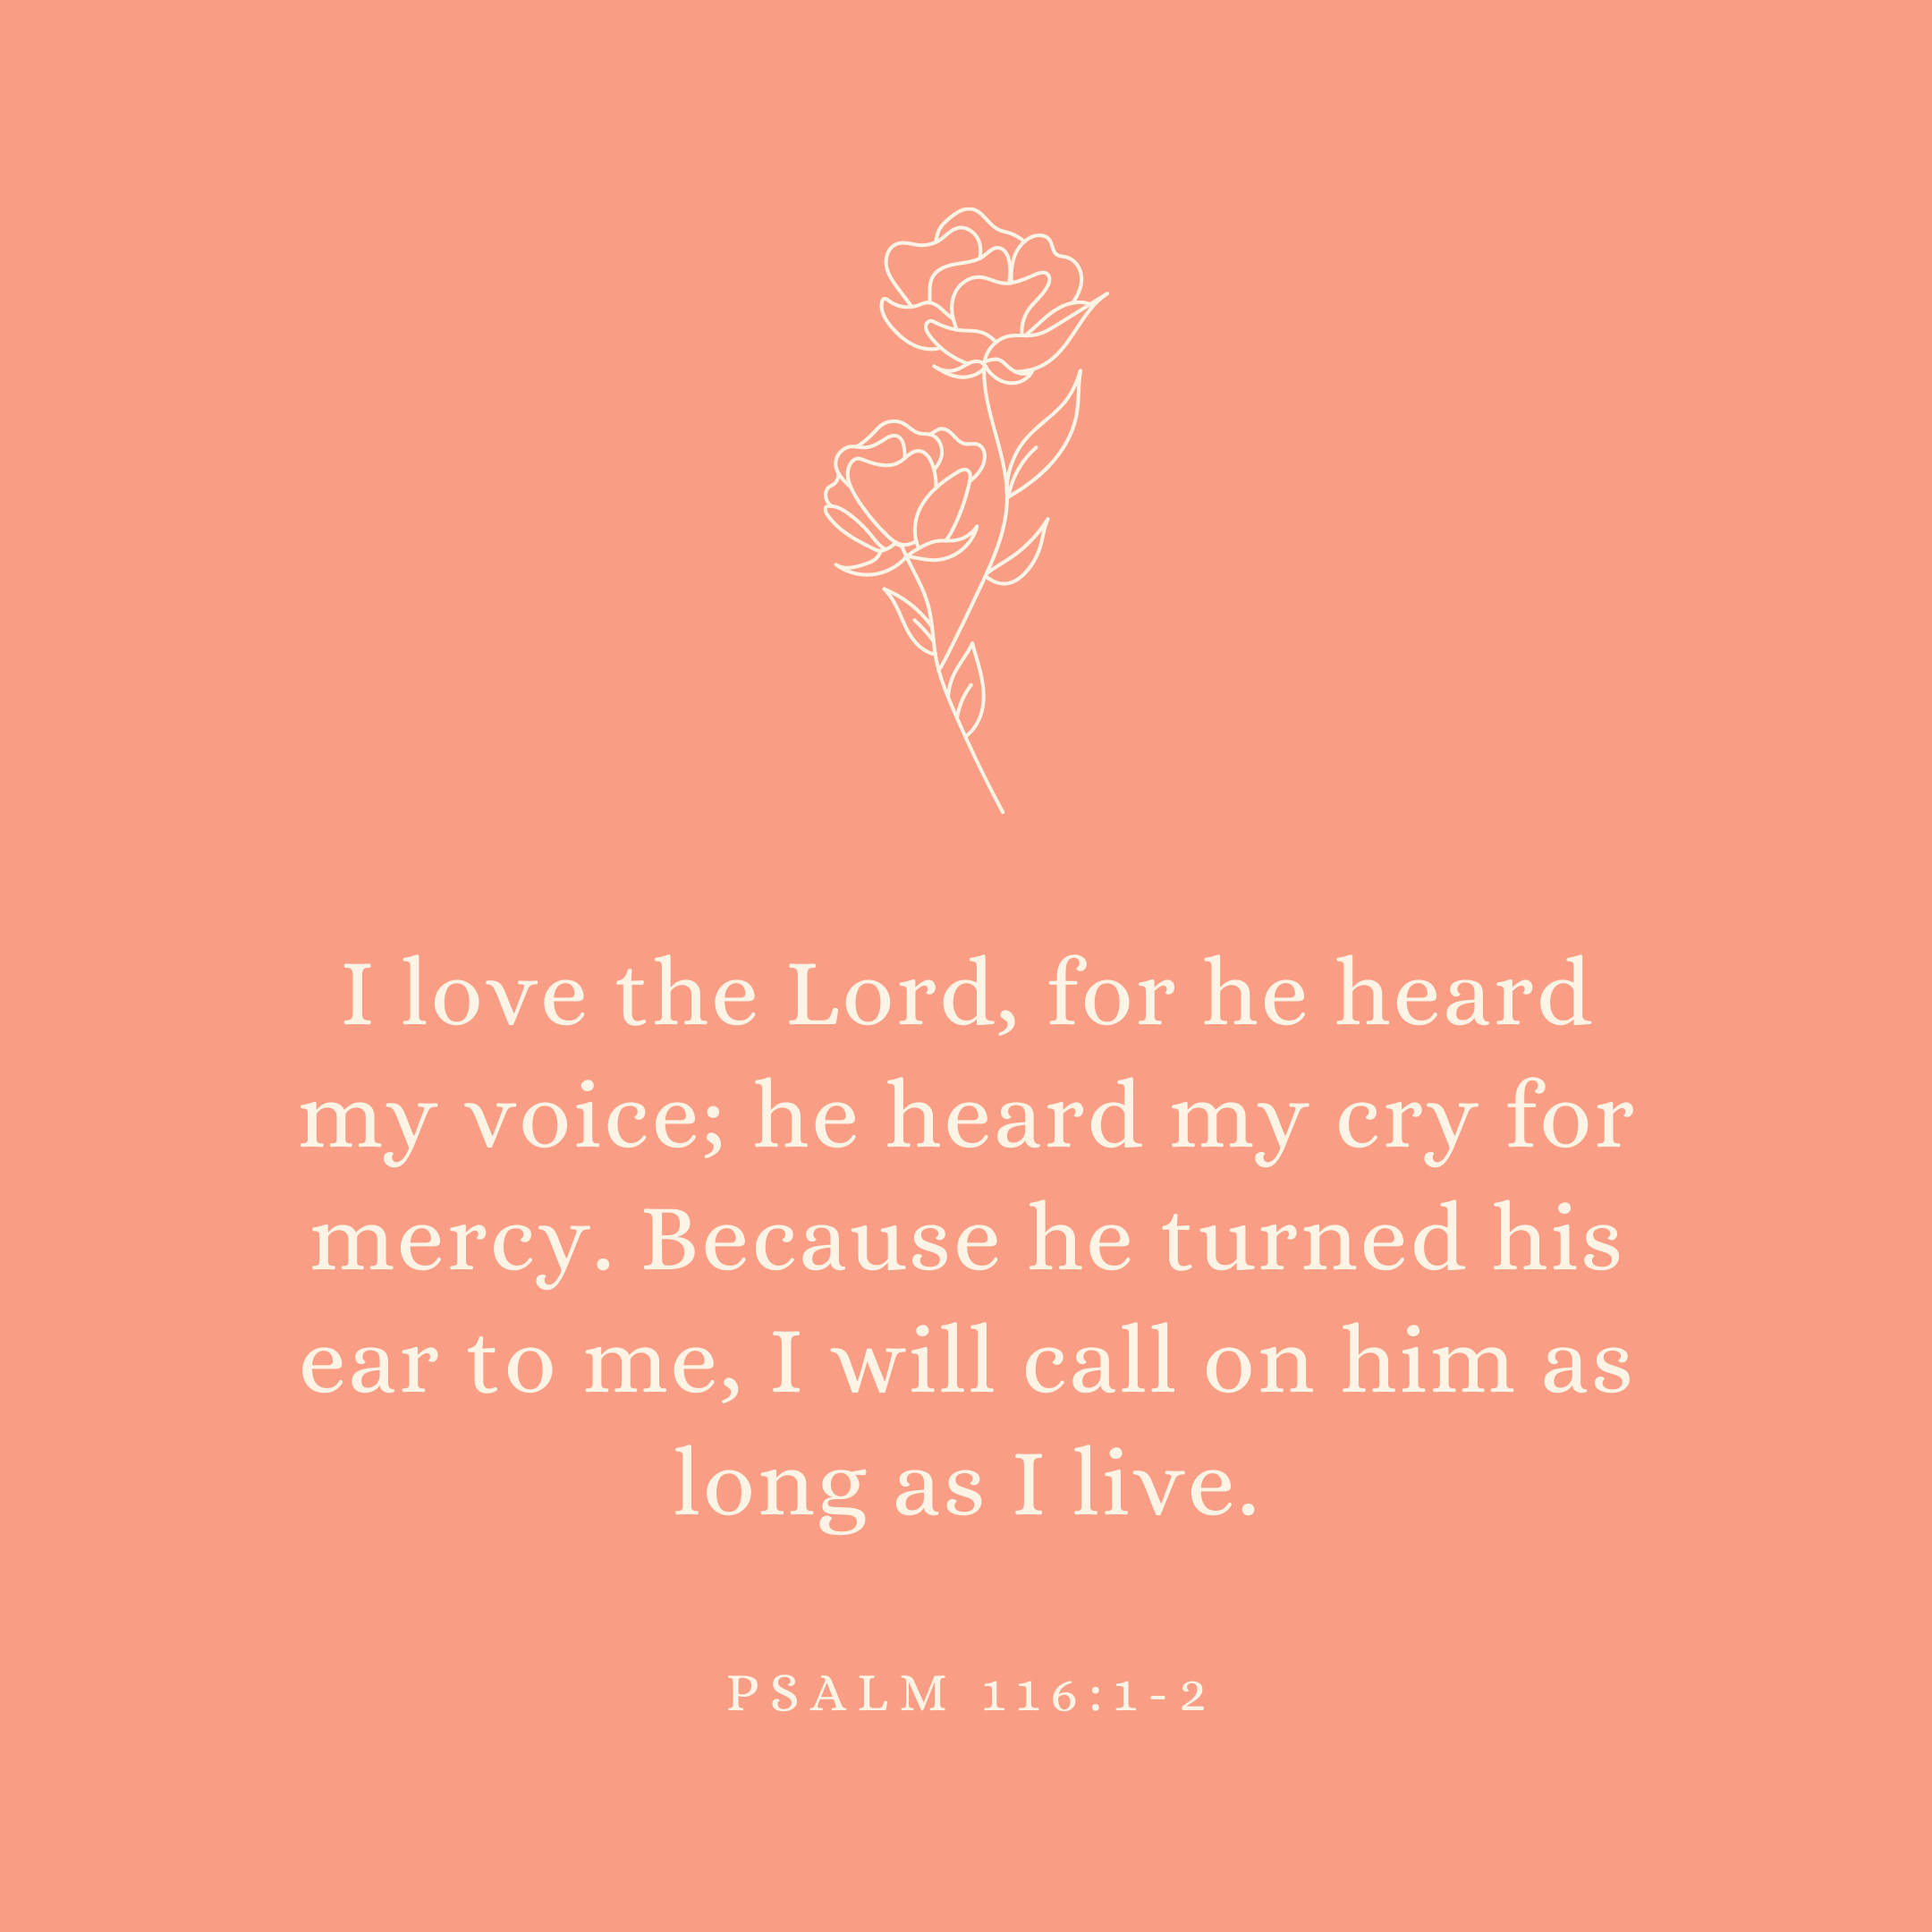 Psalm 116:1-2 I love the Lord, for he heard my voice; he heard my cry for mercy. Because he turned his ear to me, I will call on him as long as I live.